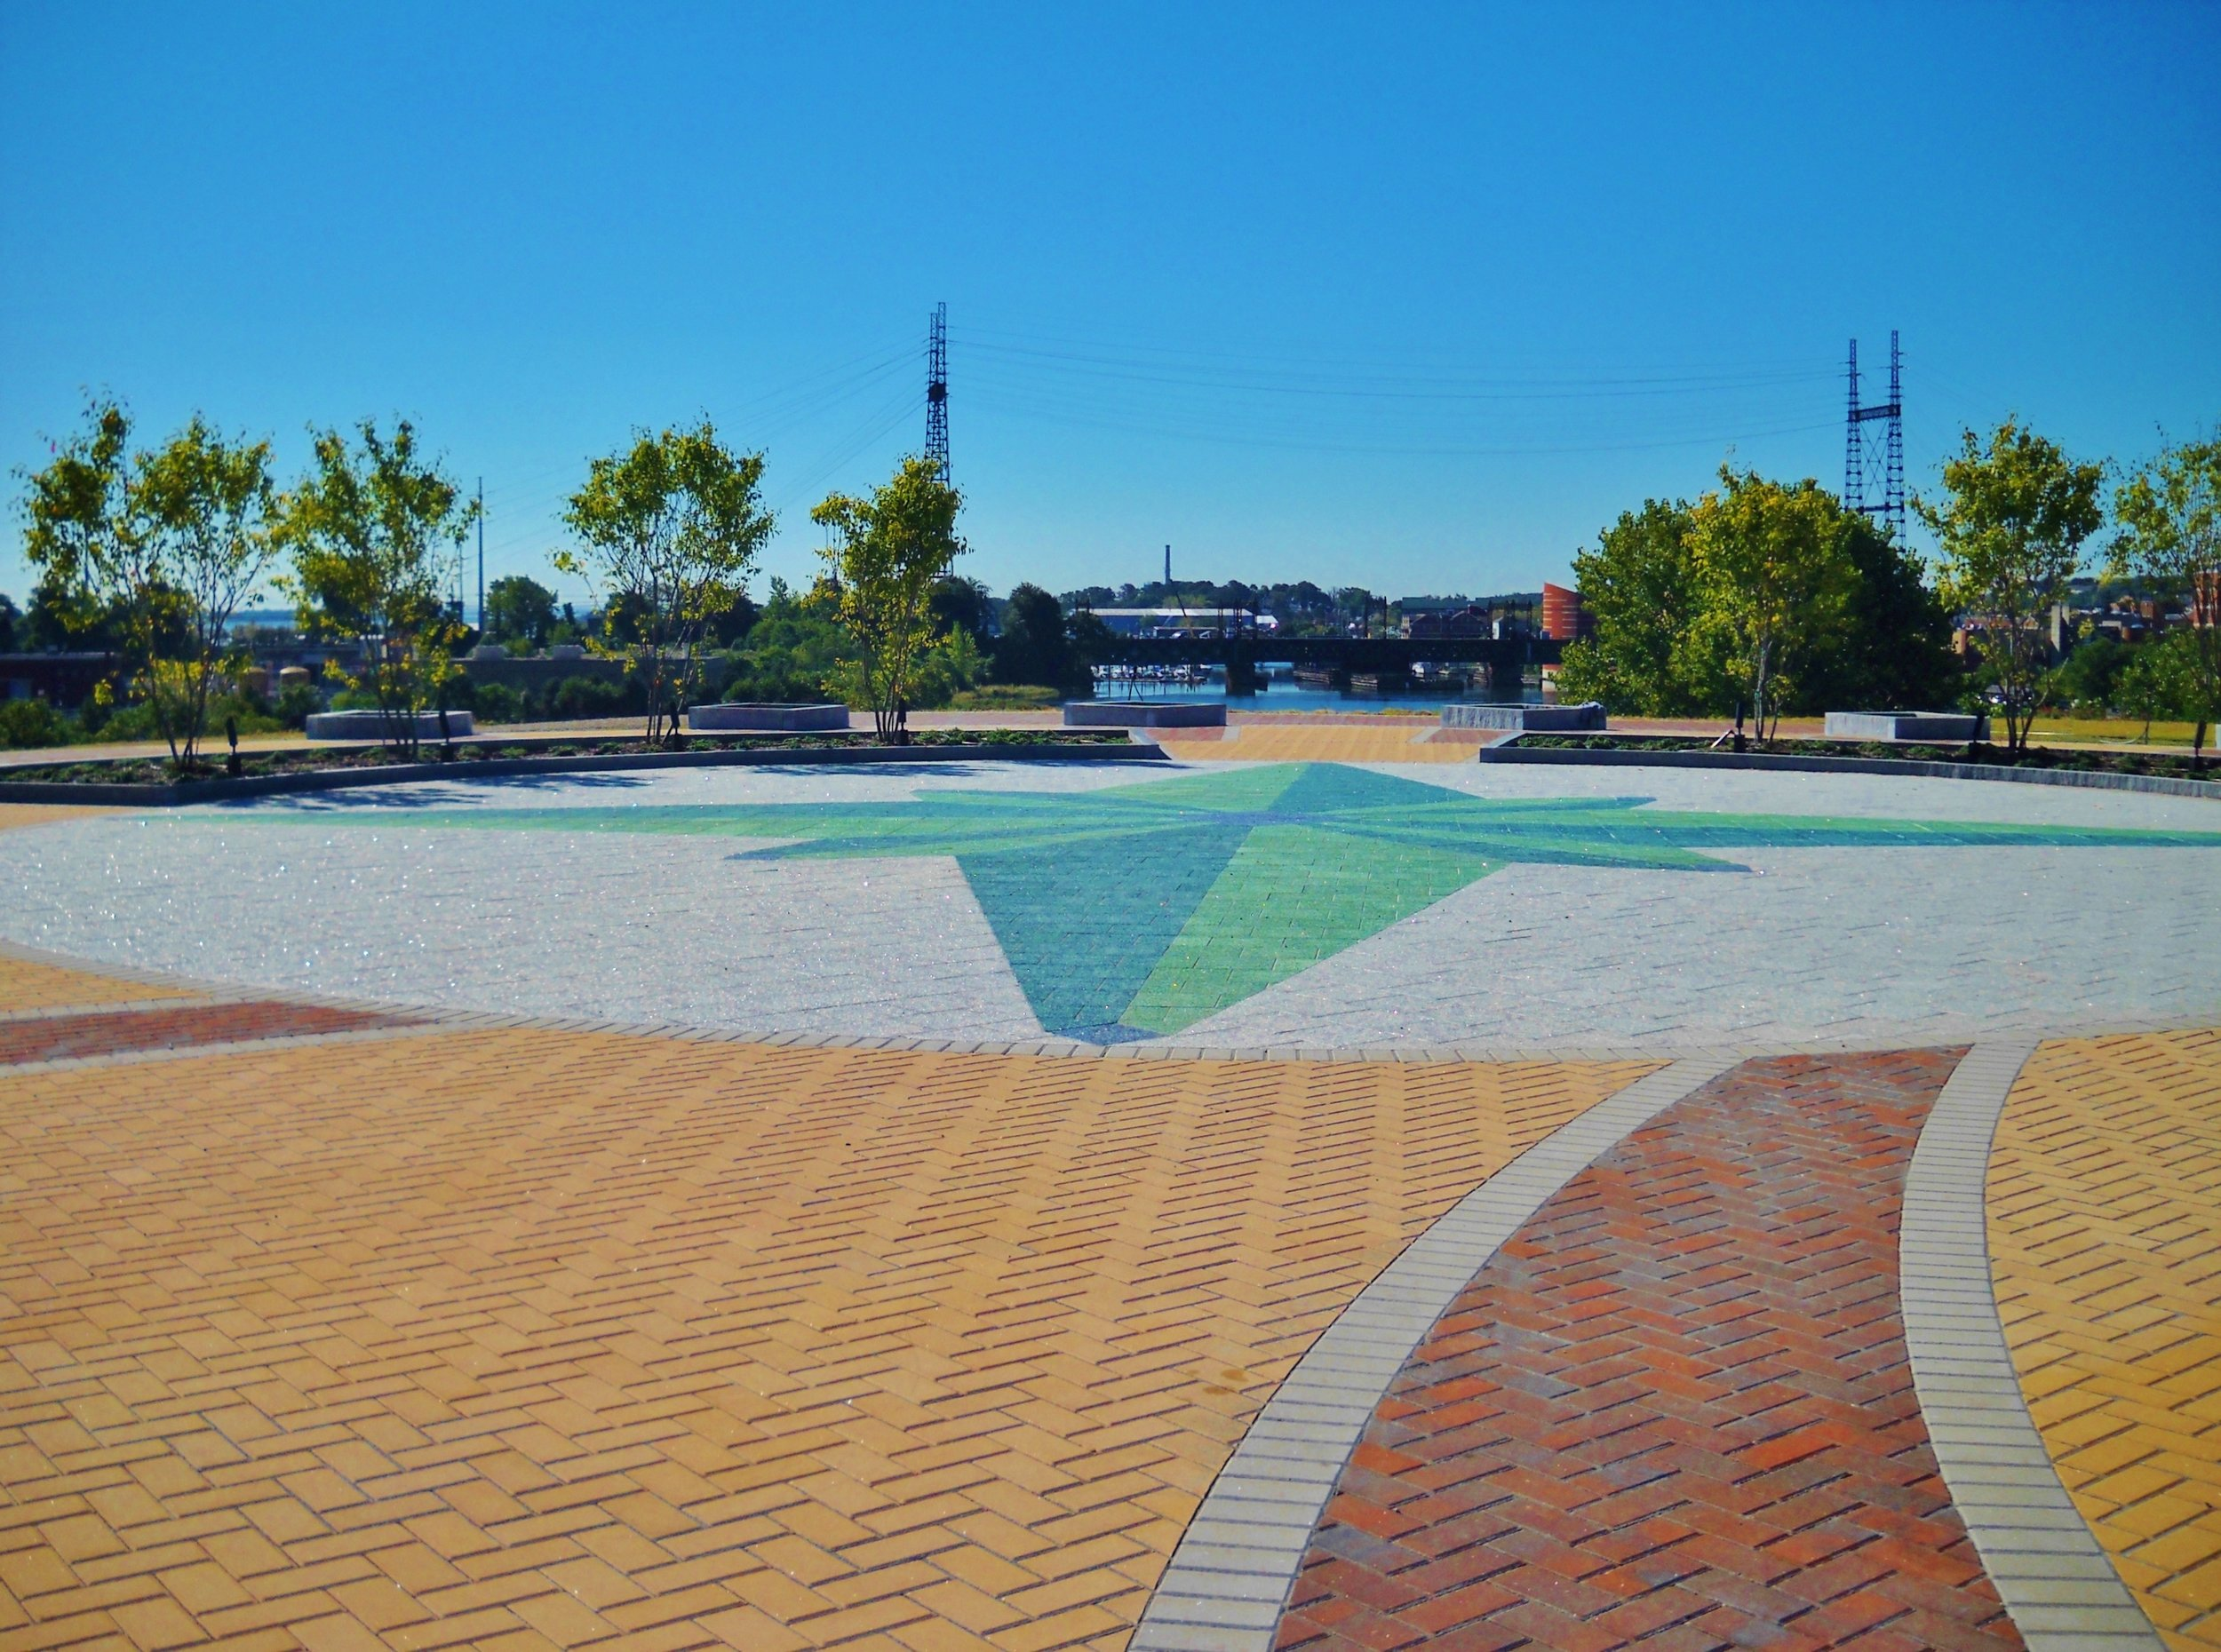 Paver installation featuring a blend of concrete pavers mixed with teal and blue recycled glass pavers